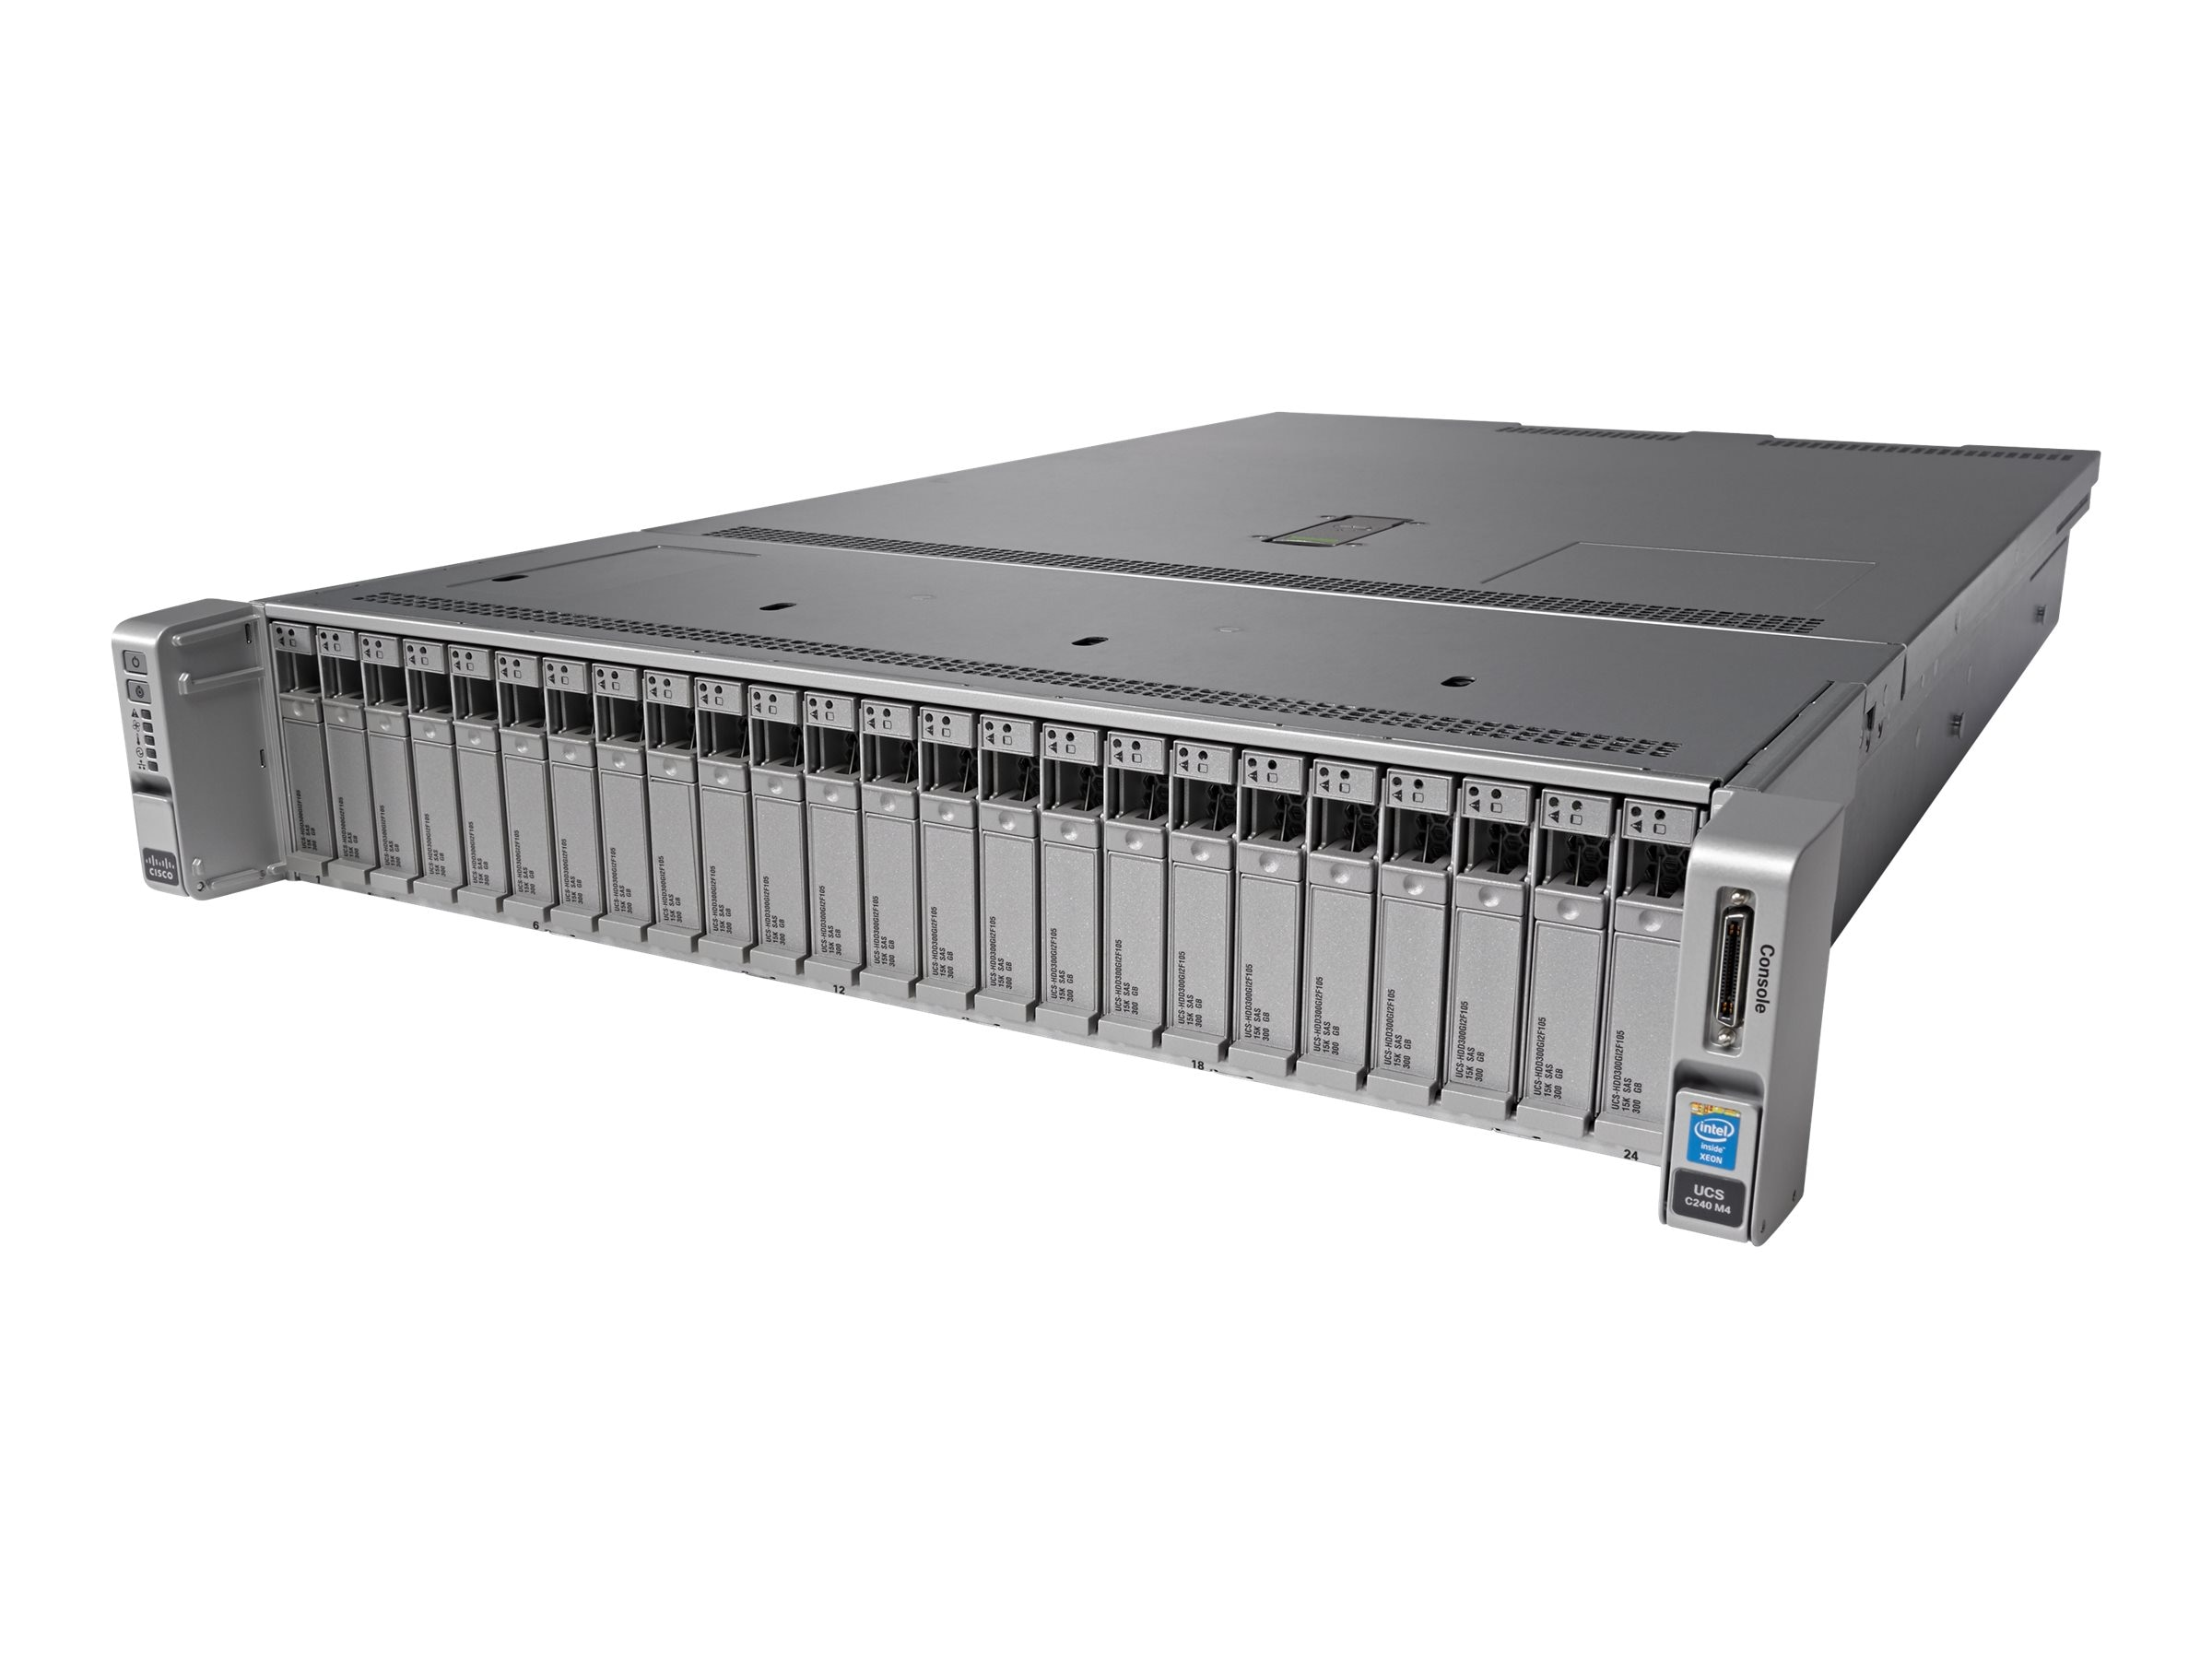 Cisco UCS-SP-C240M4-B-S2 Image 1